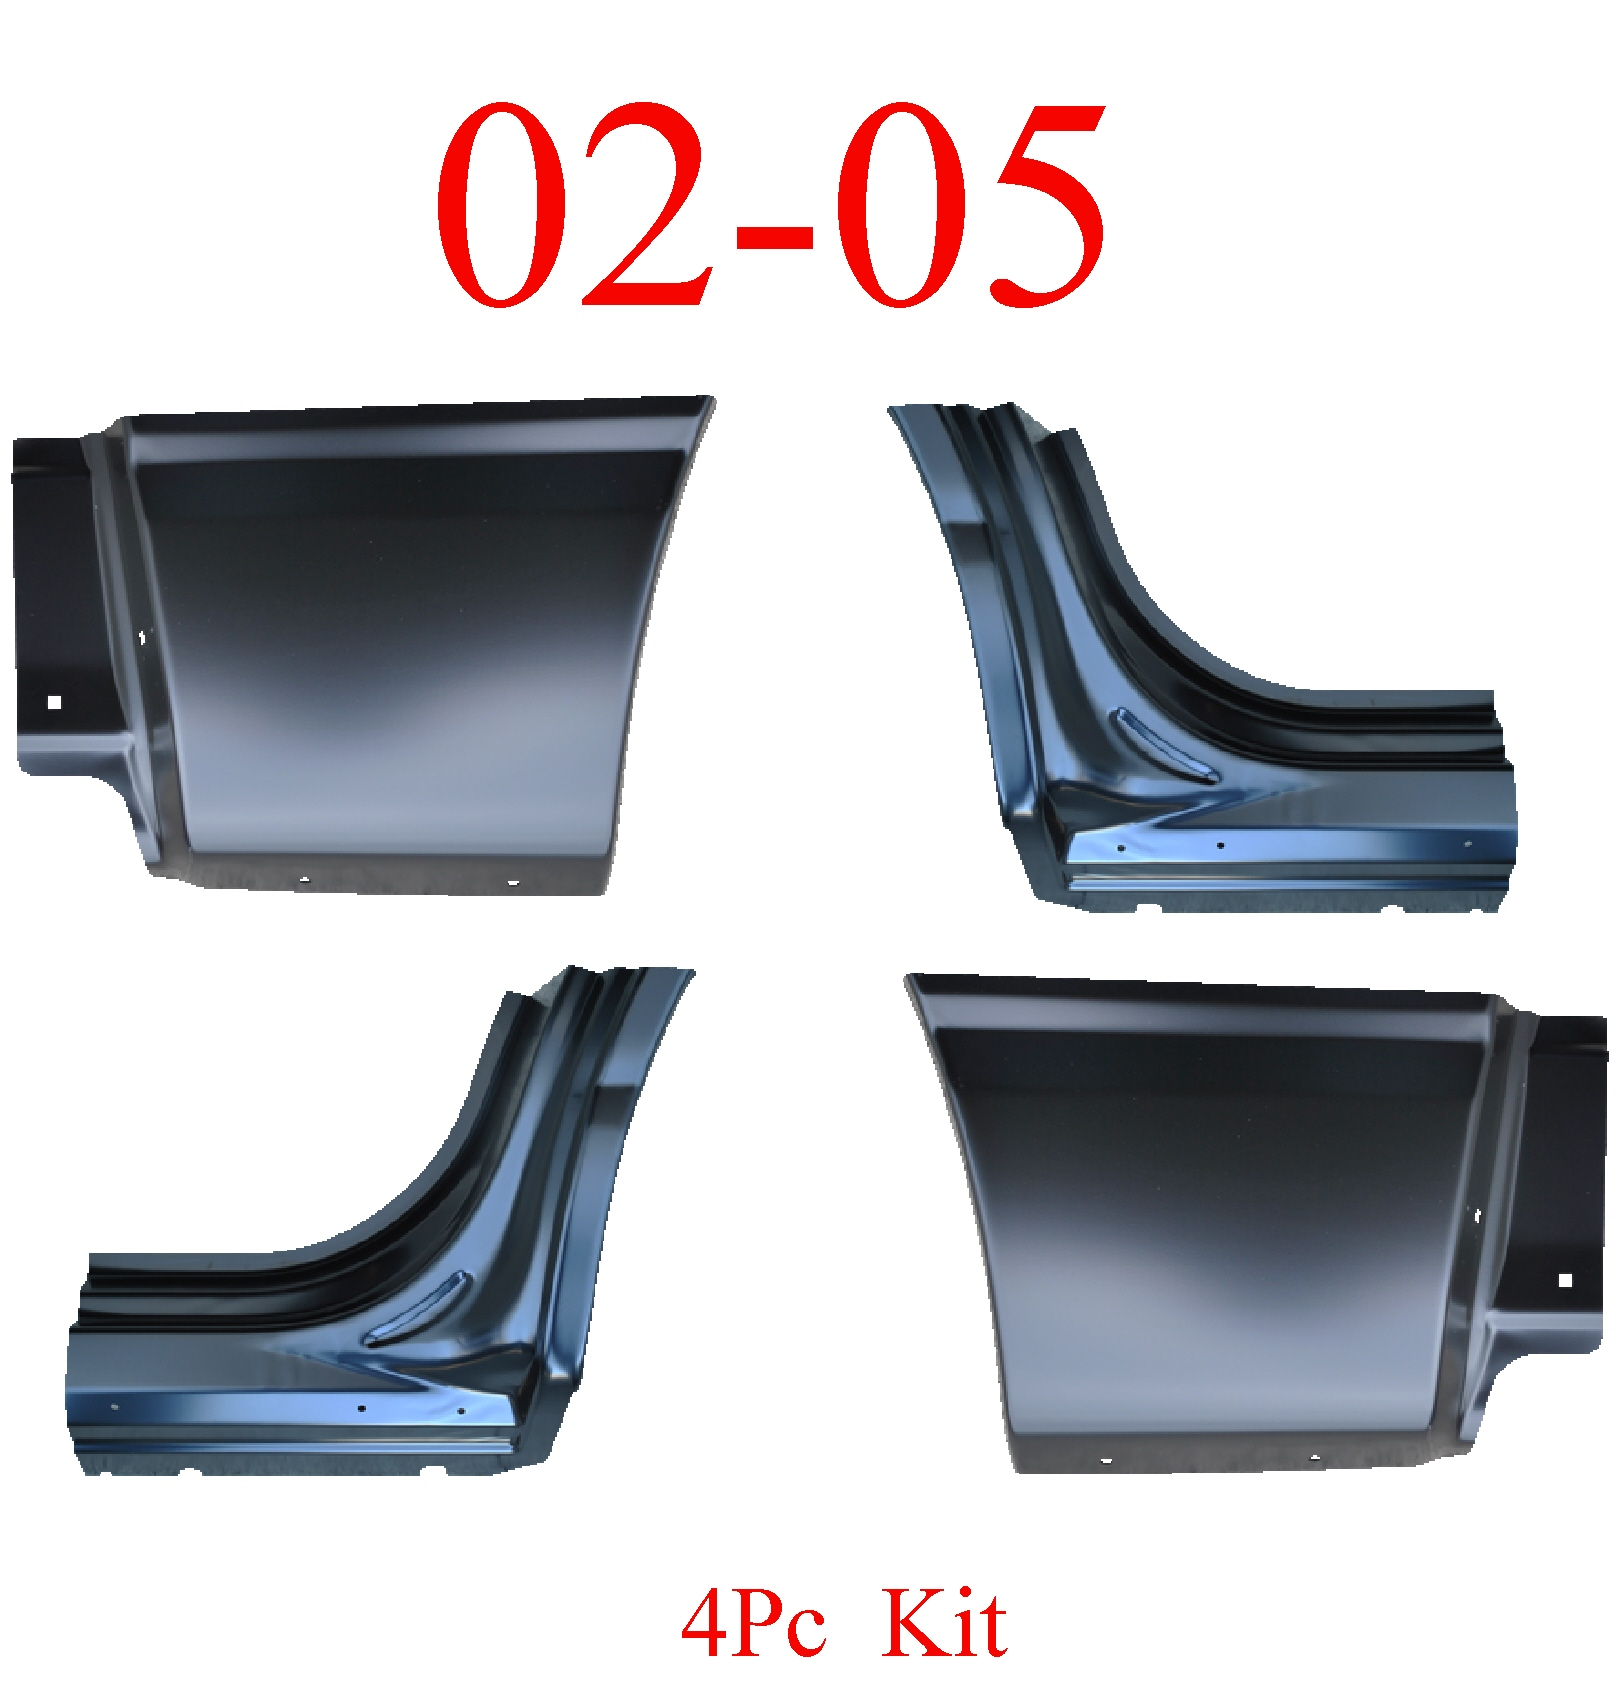 02-05 Ford Explorer 4Pc Lower Quarter Patch Set & Dog Leg Set